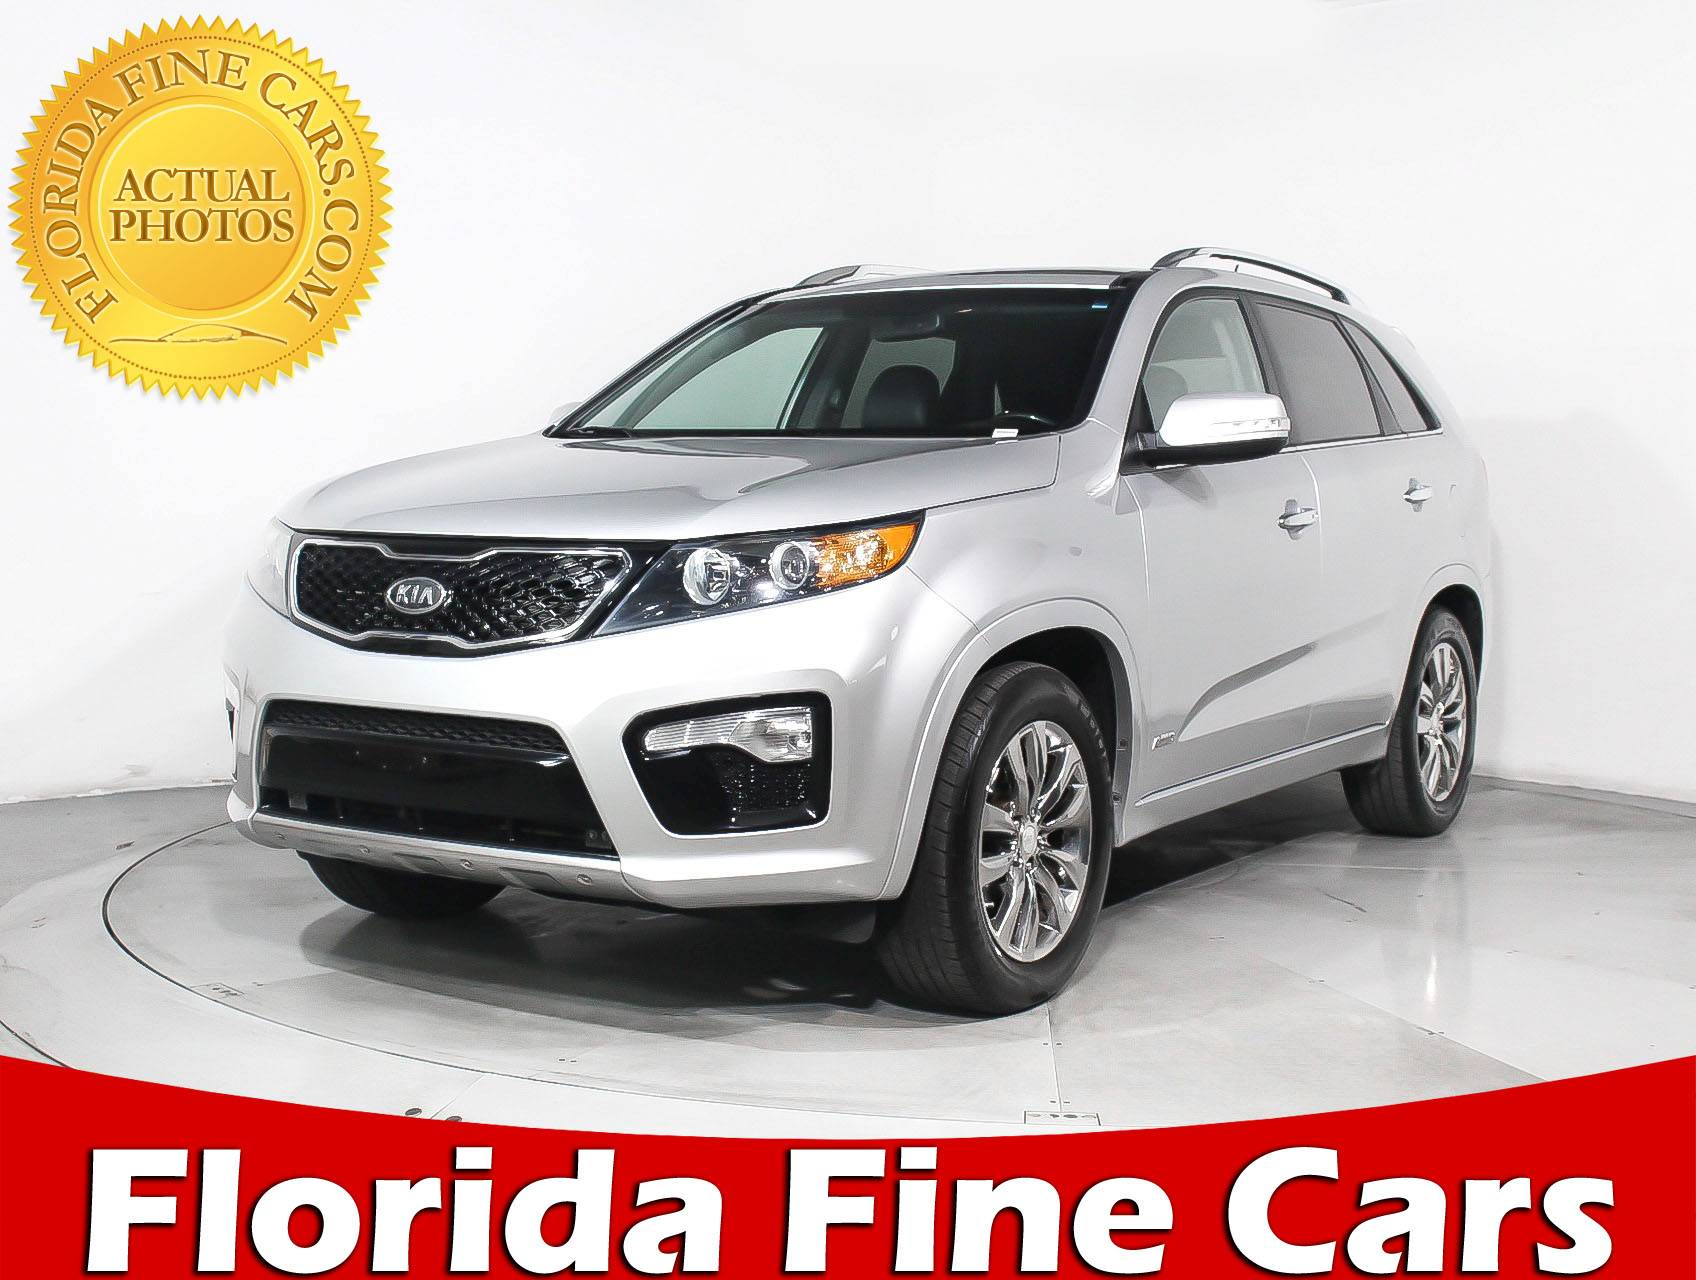 kia stock in sx cars florida sale miami fl for awd fine sorento suv carsforsale used